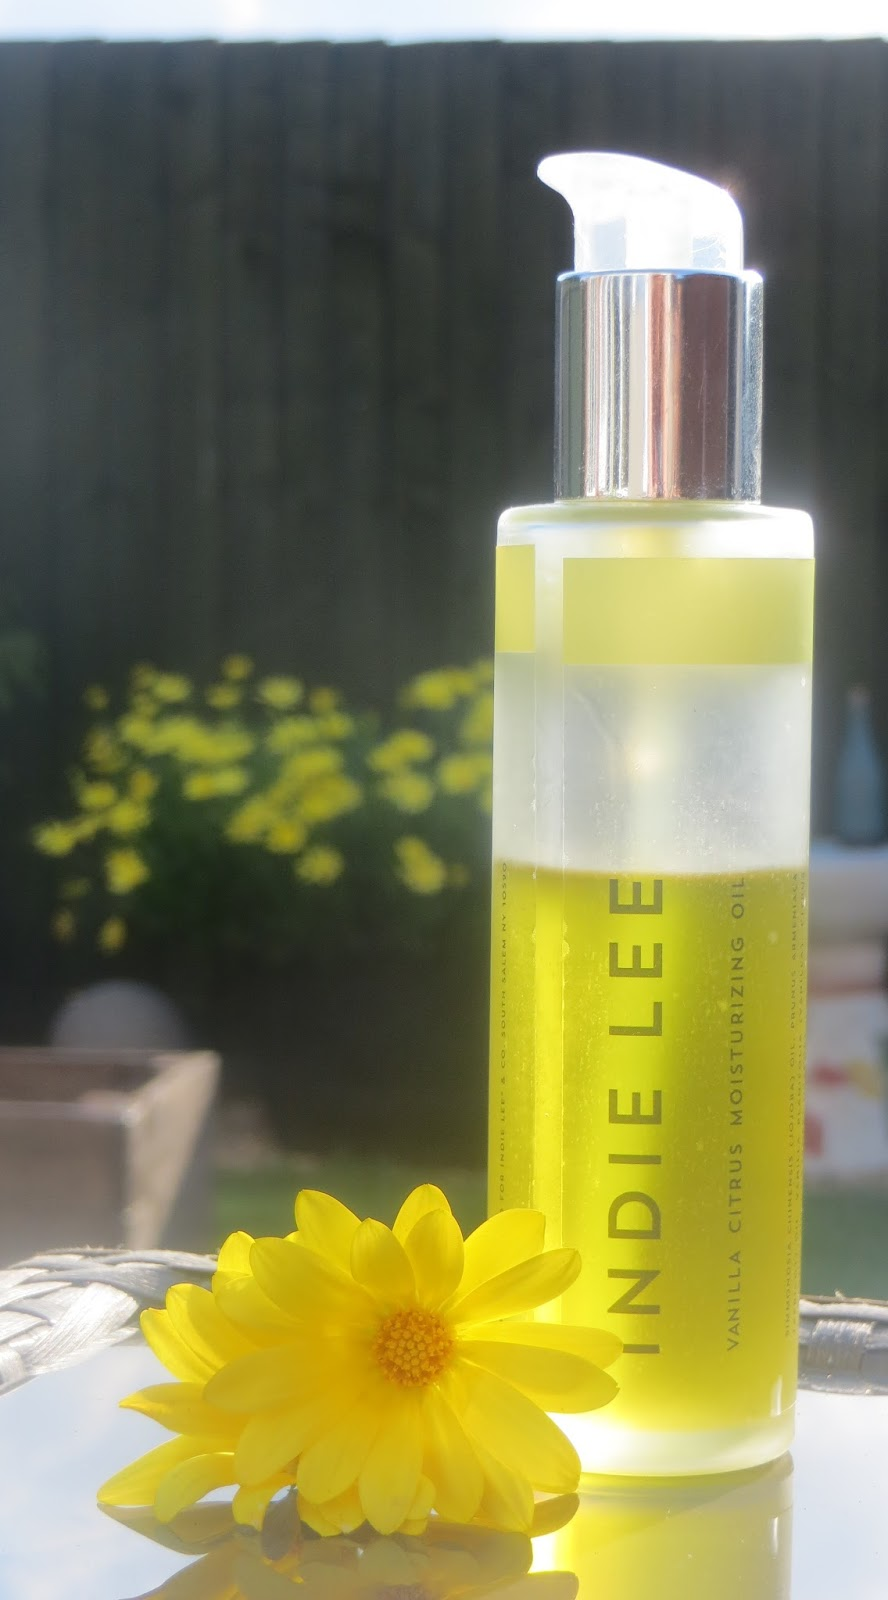 Indie Lee Vanilla Citrus Moisturising Body Oil